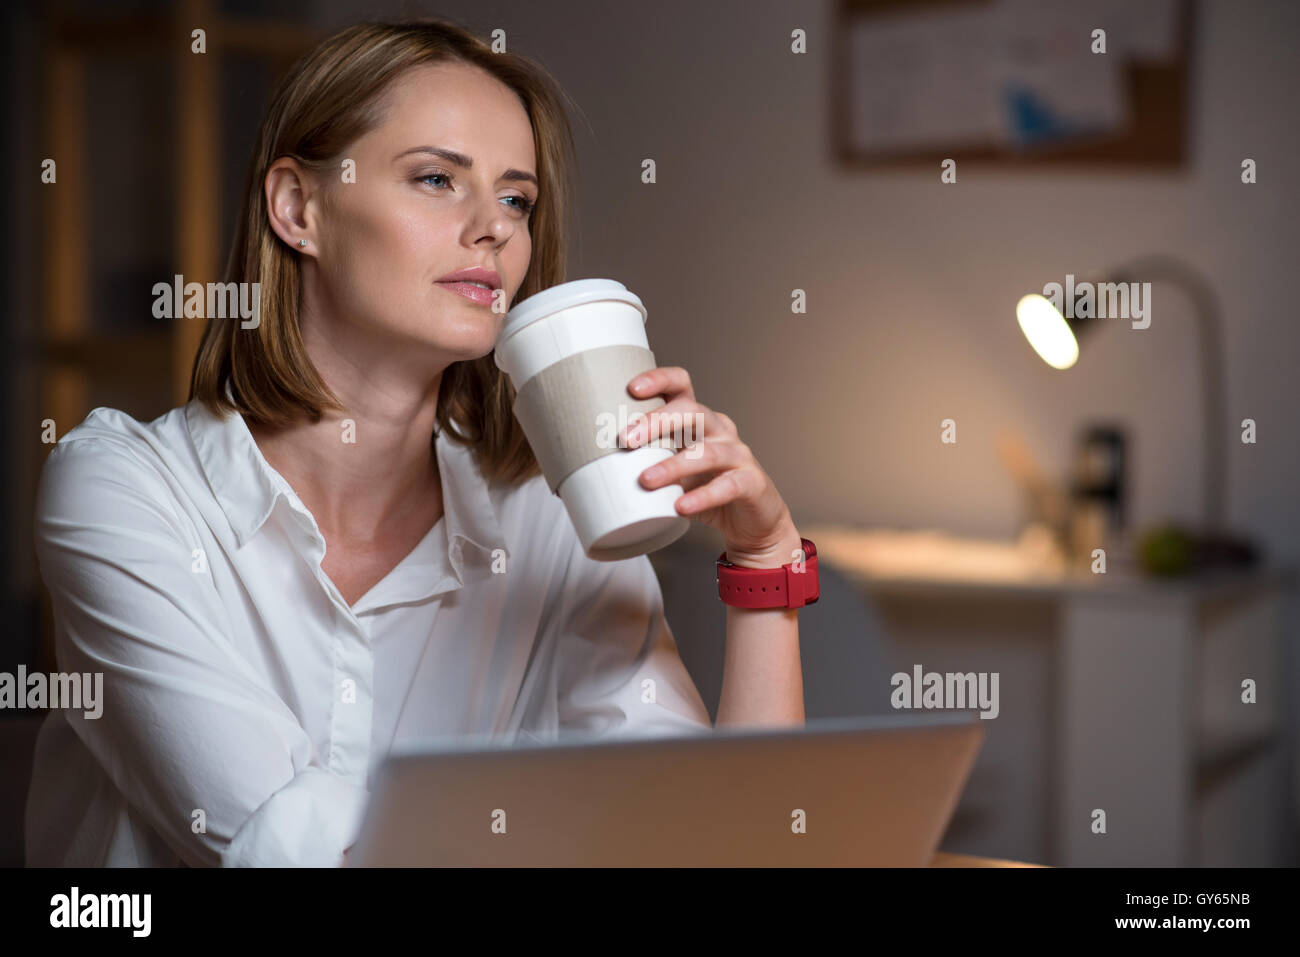 Pleasant thoughtful woman thinking - Stock Image